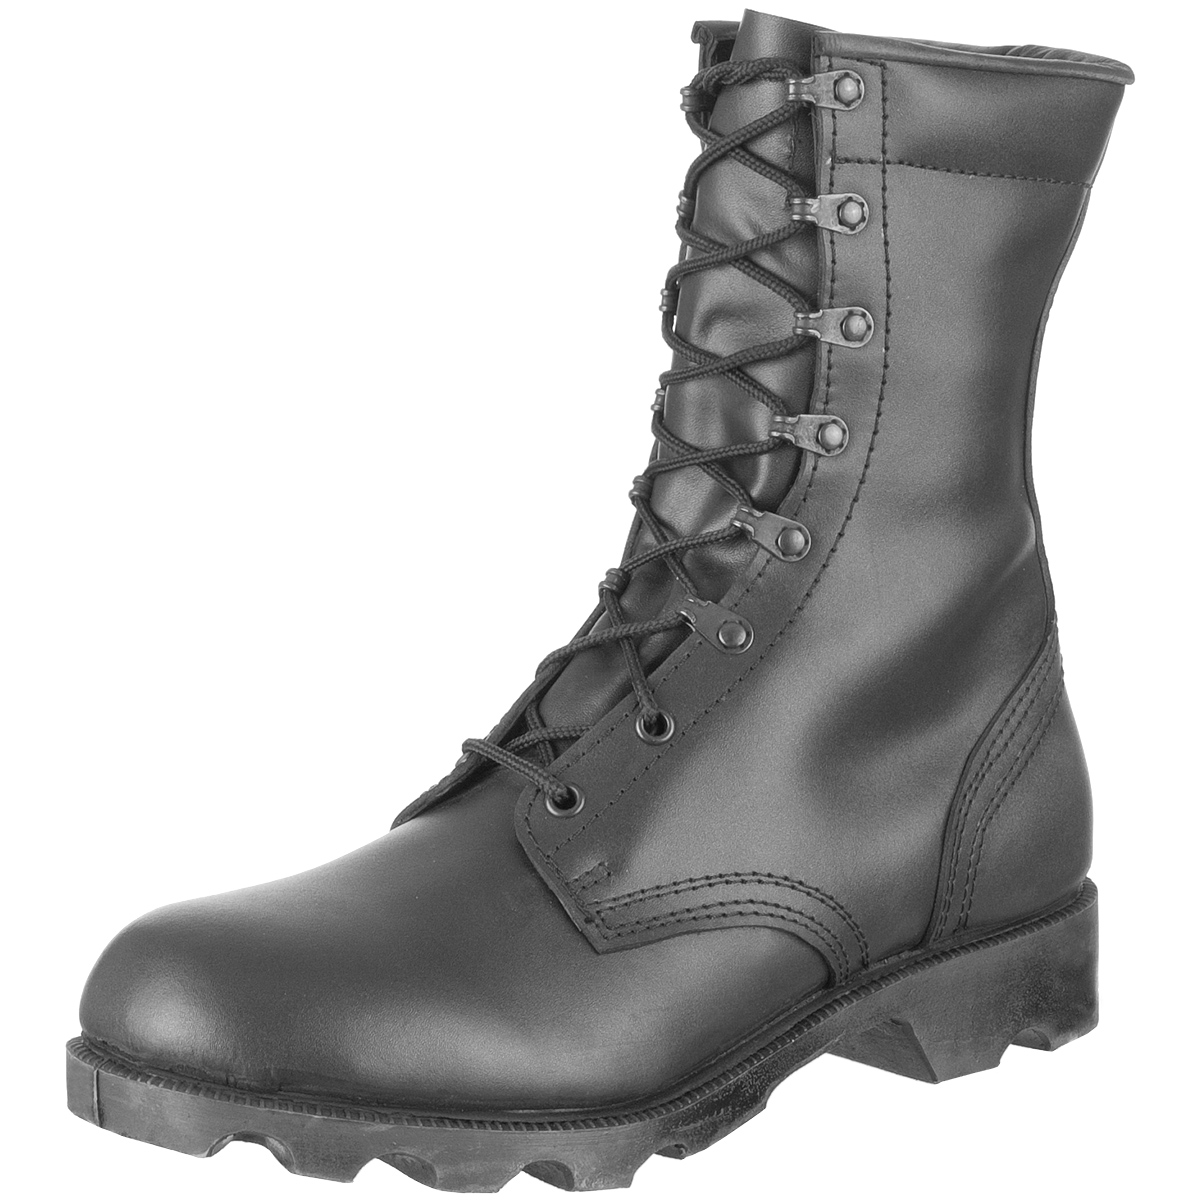 Details about US Army Speed Lace Black Leather Combat Cadet Military Mens  Hi-Leg Boots   6-13 26eb44beff0